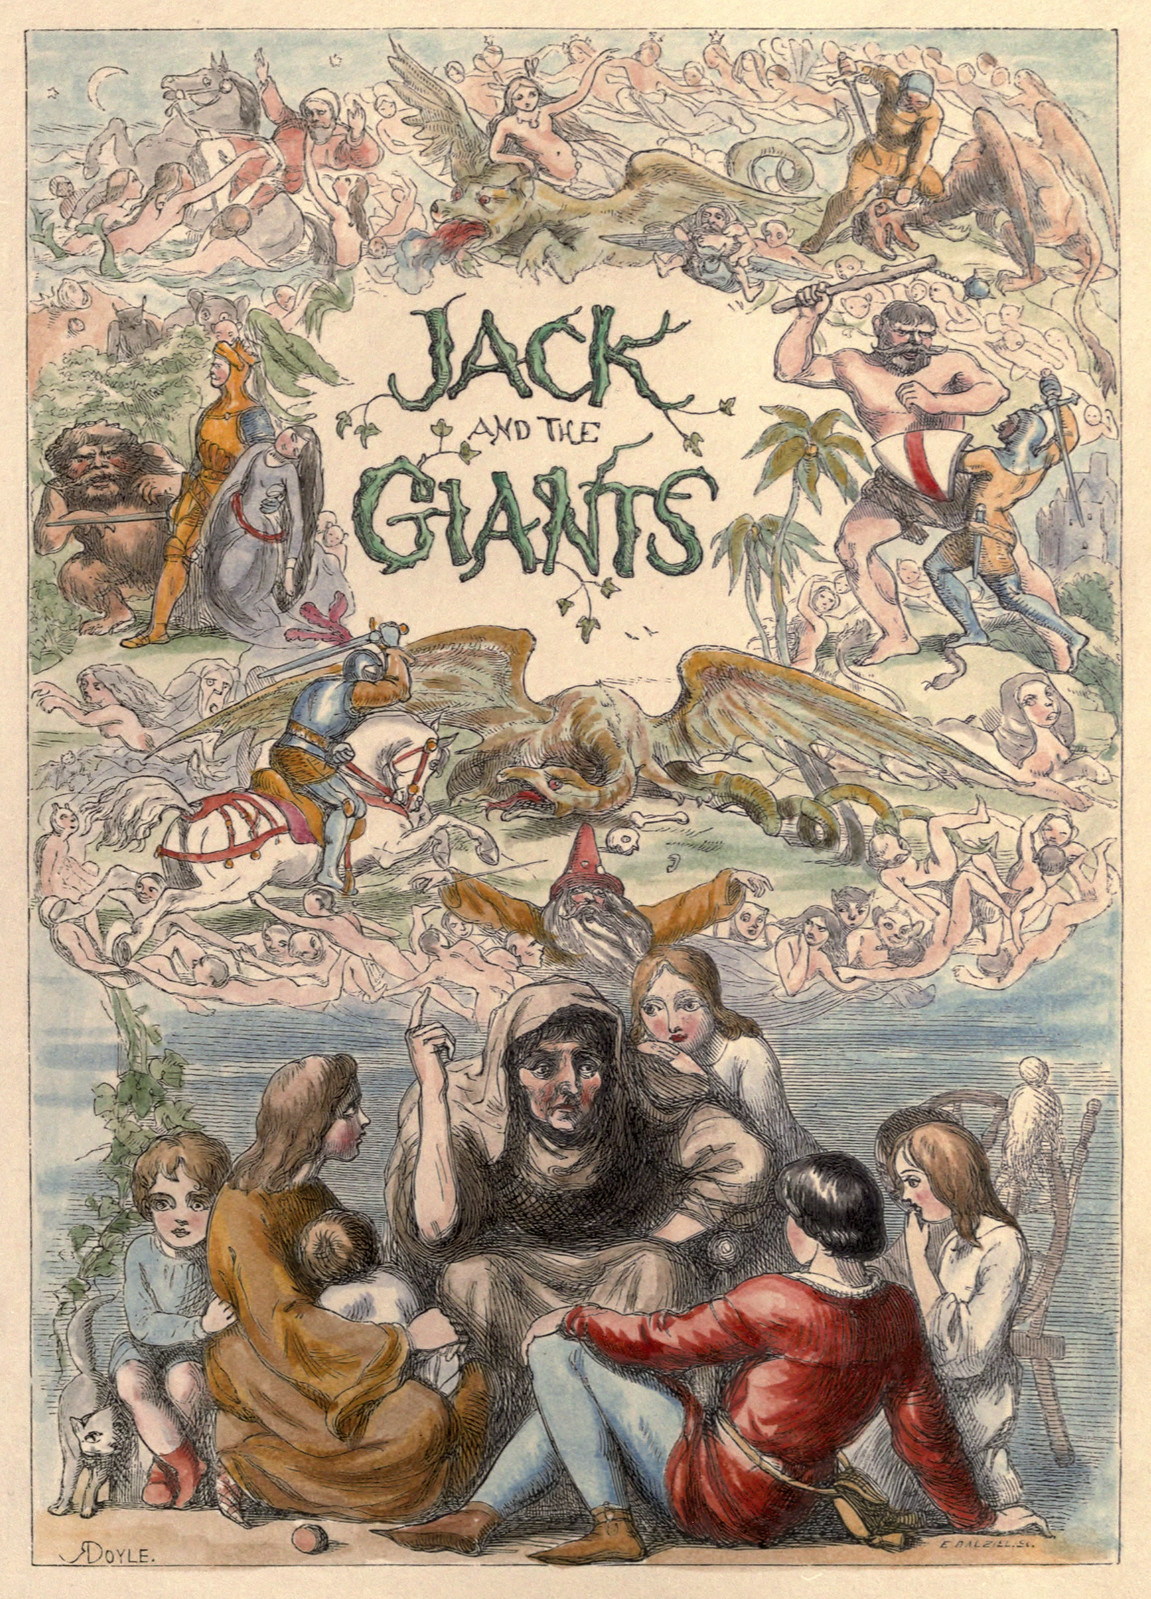 Richard Doyle - The Story of Jack and the Giant, 1851, title page